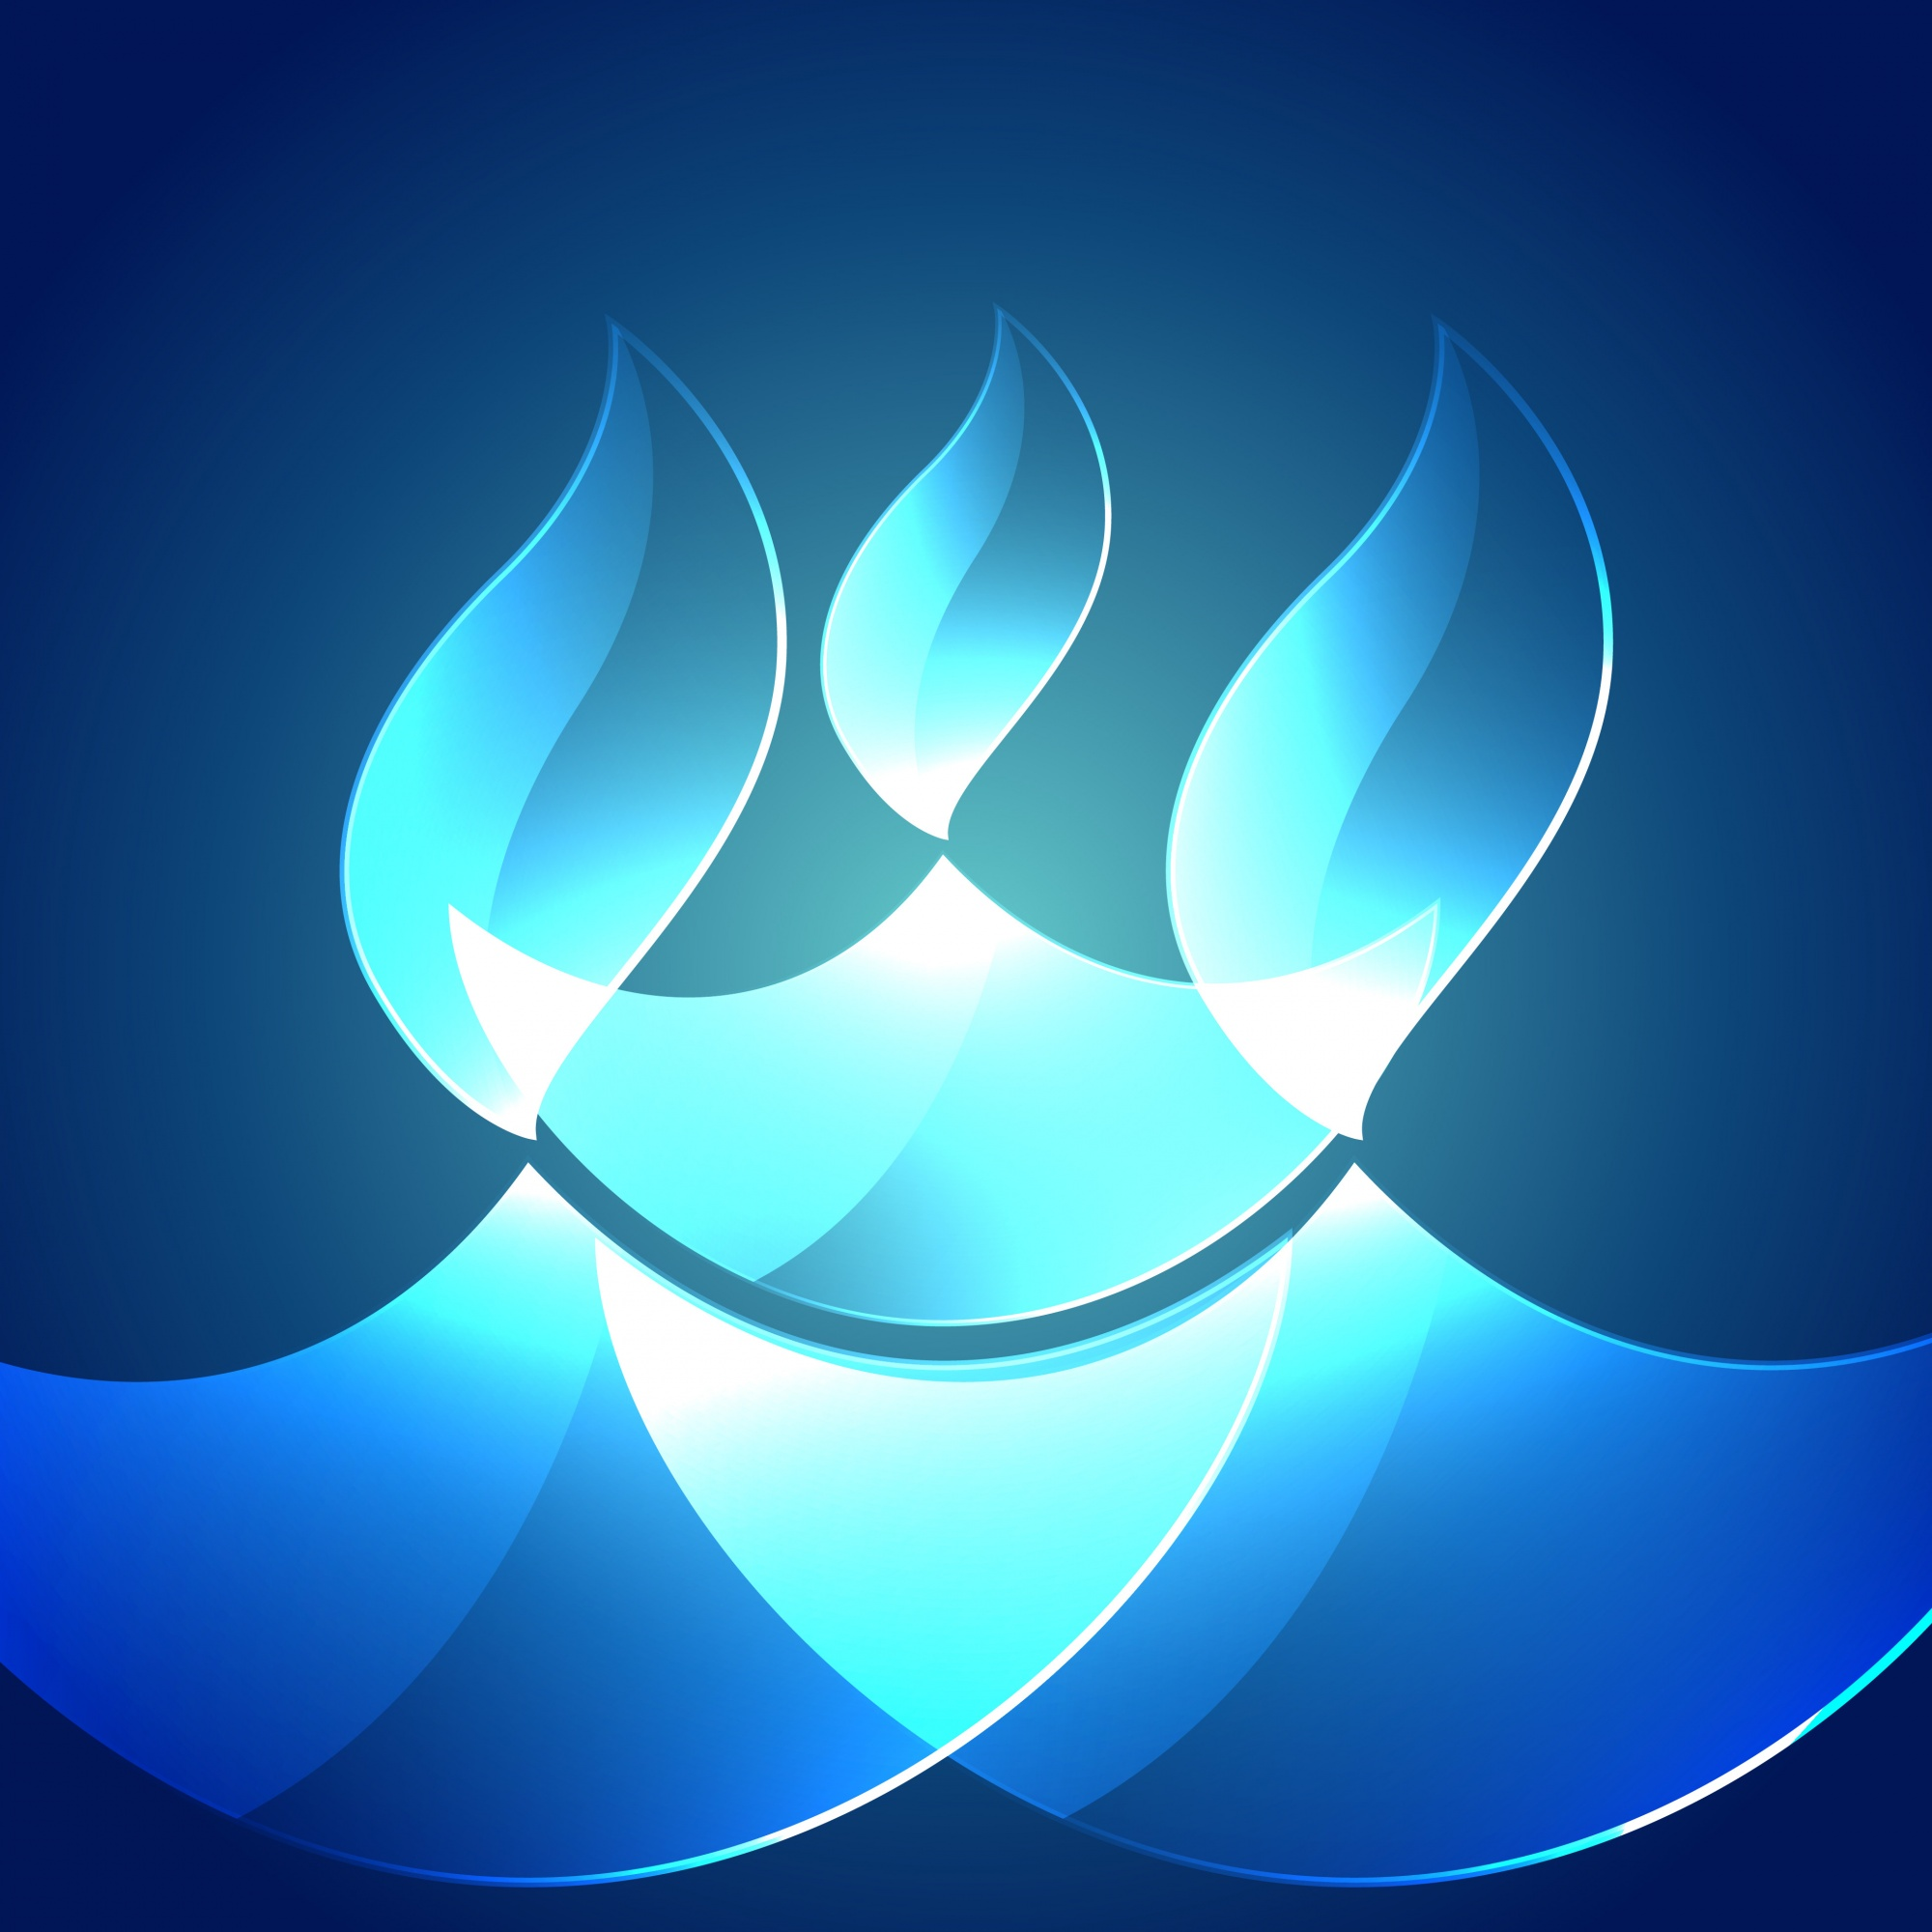 Abstract blue design for diwali festival